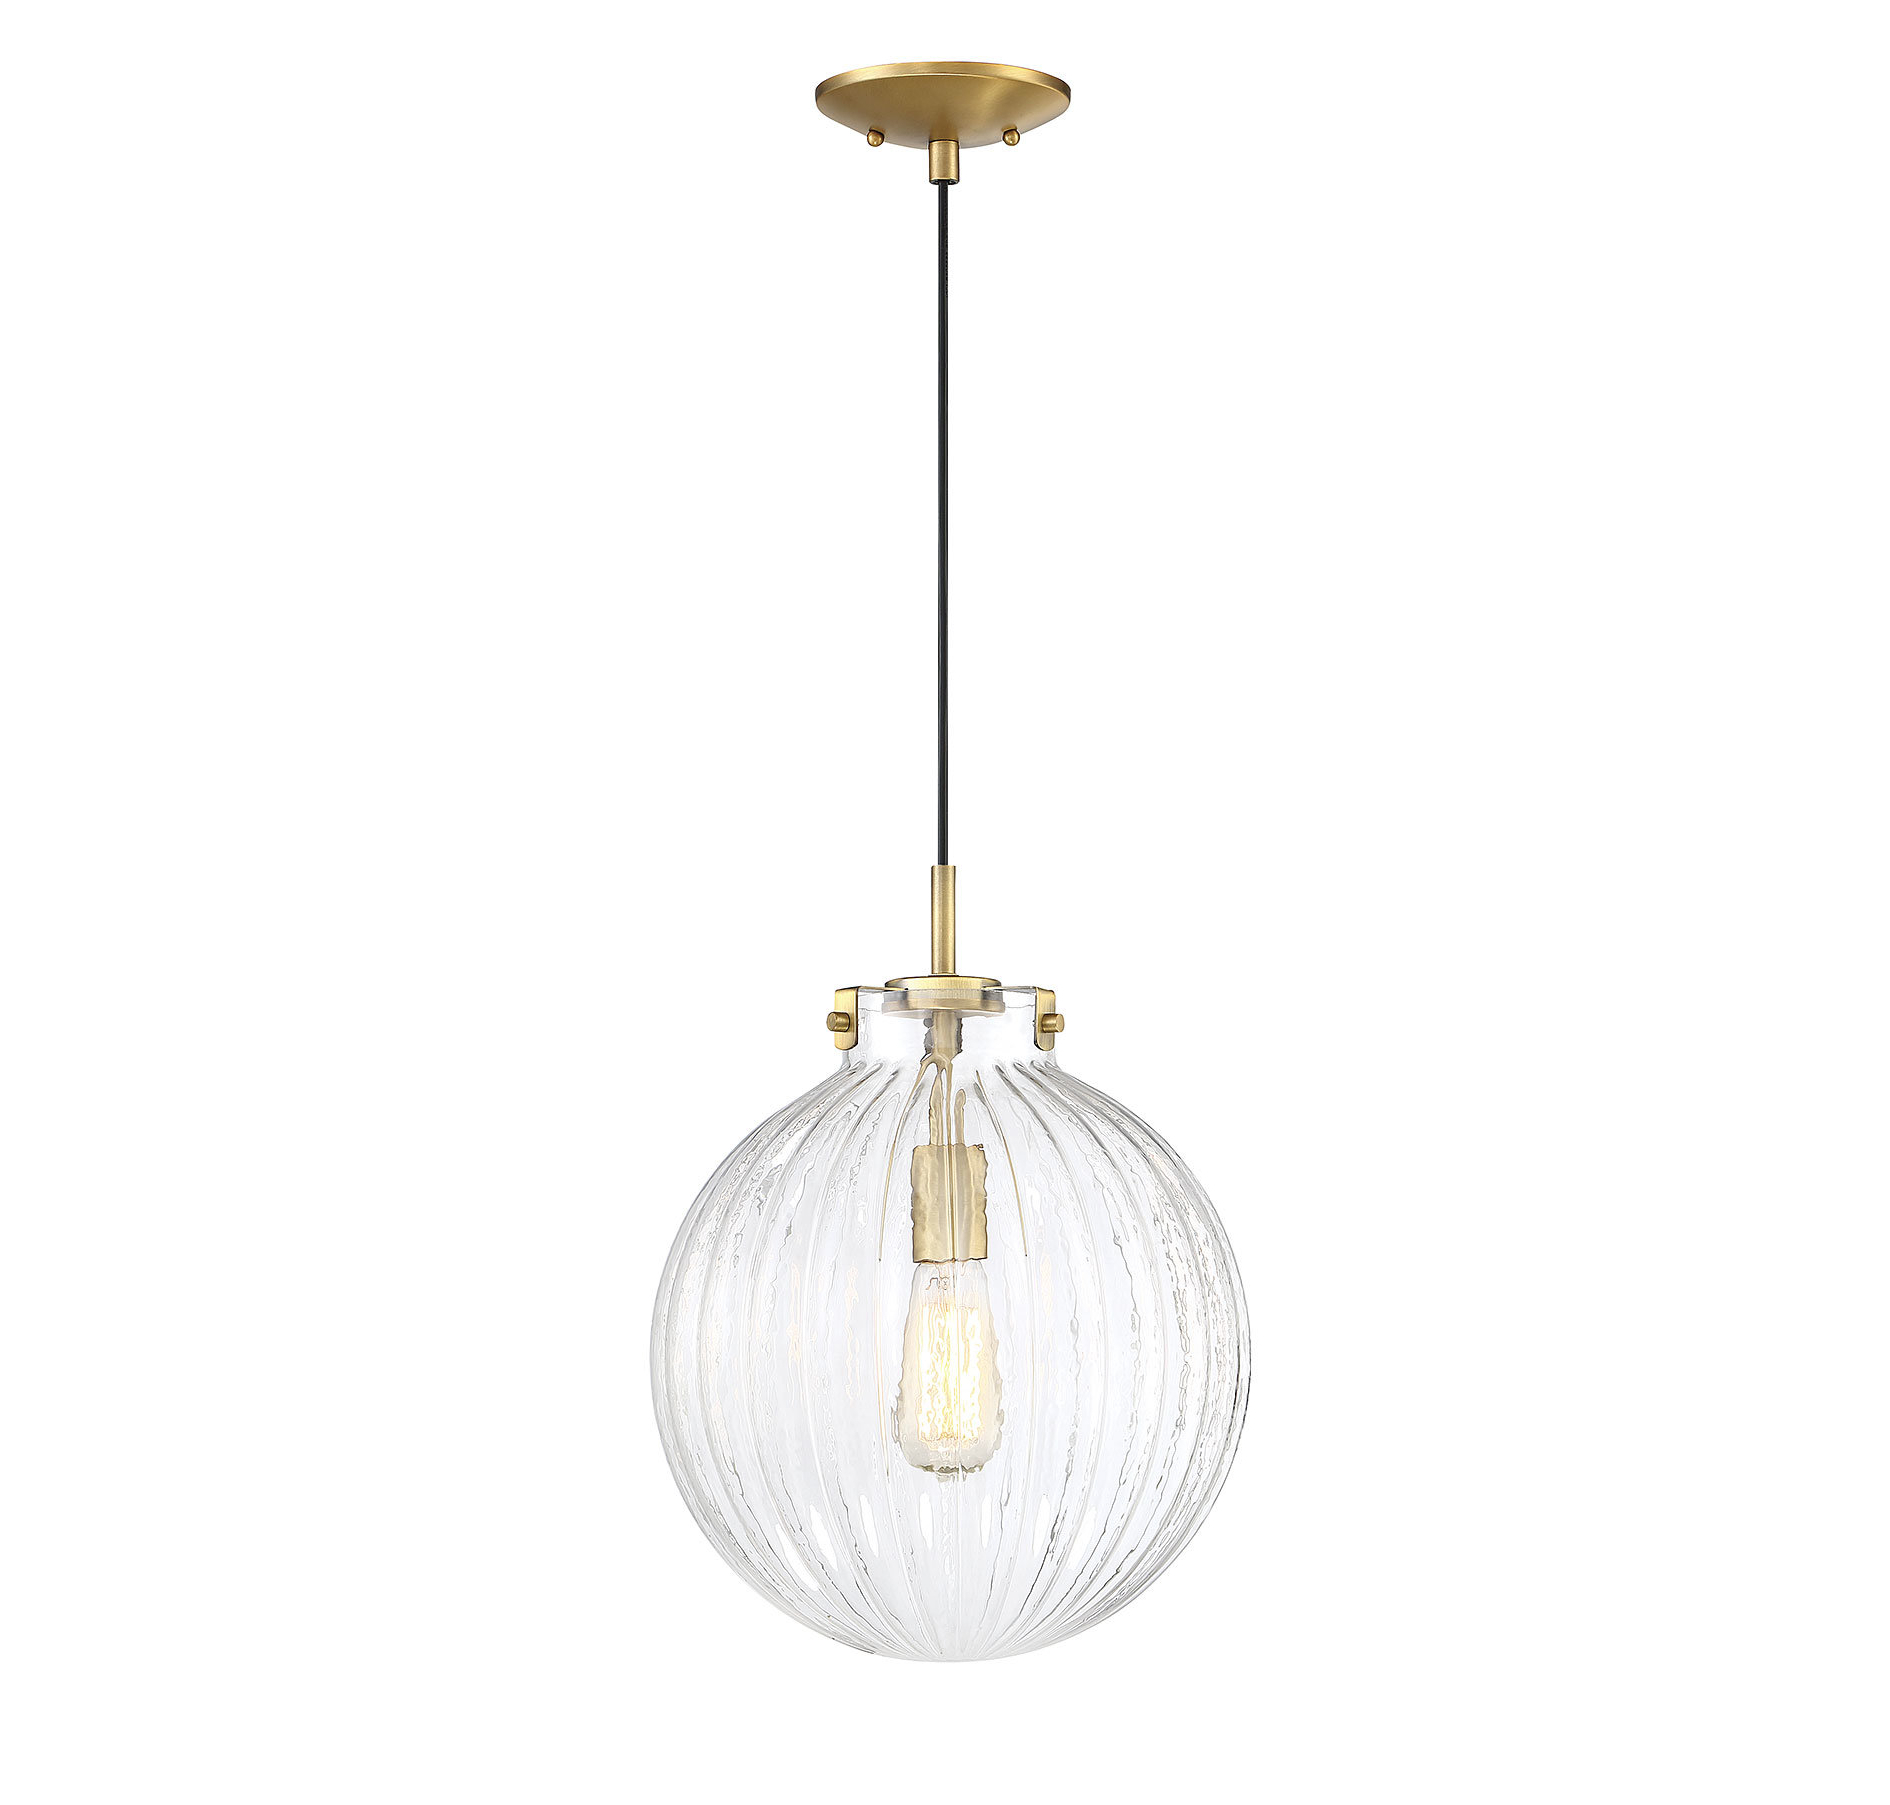 Most Popular Nevels 1 Light Single Globe Pendant Pertaining To Bundy 1 Light Single Globe Pendants (View 13 of 20)